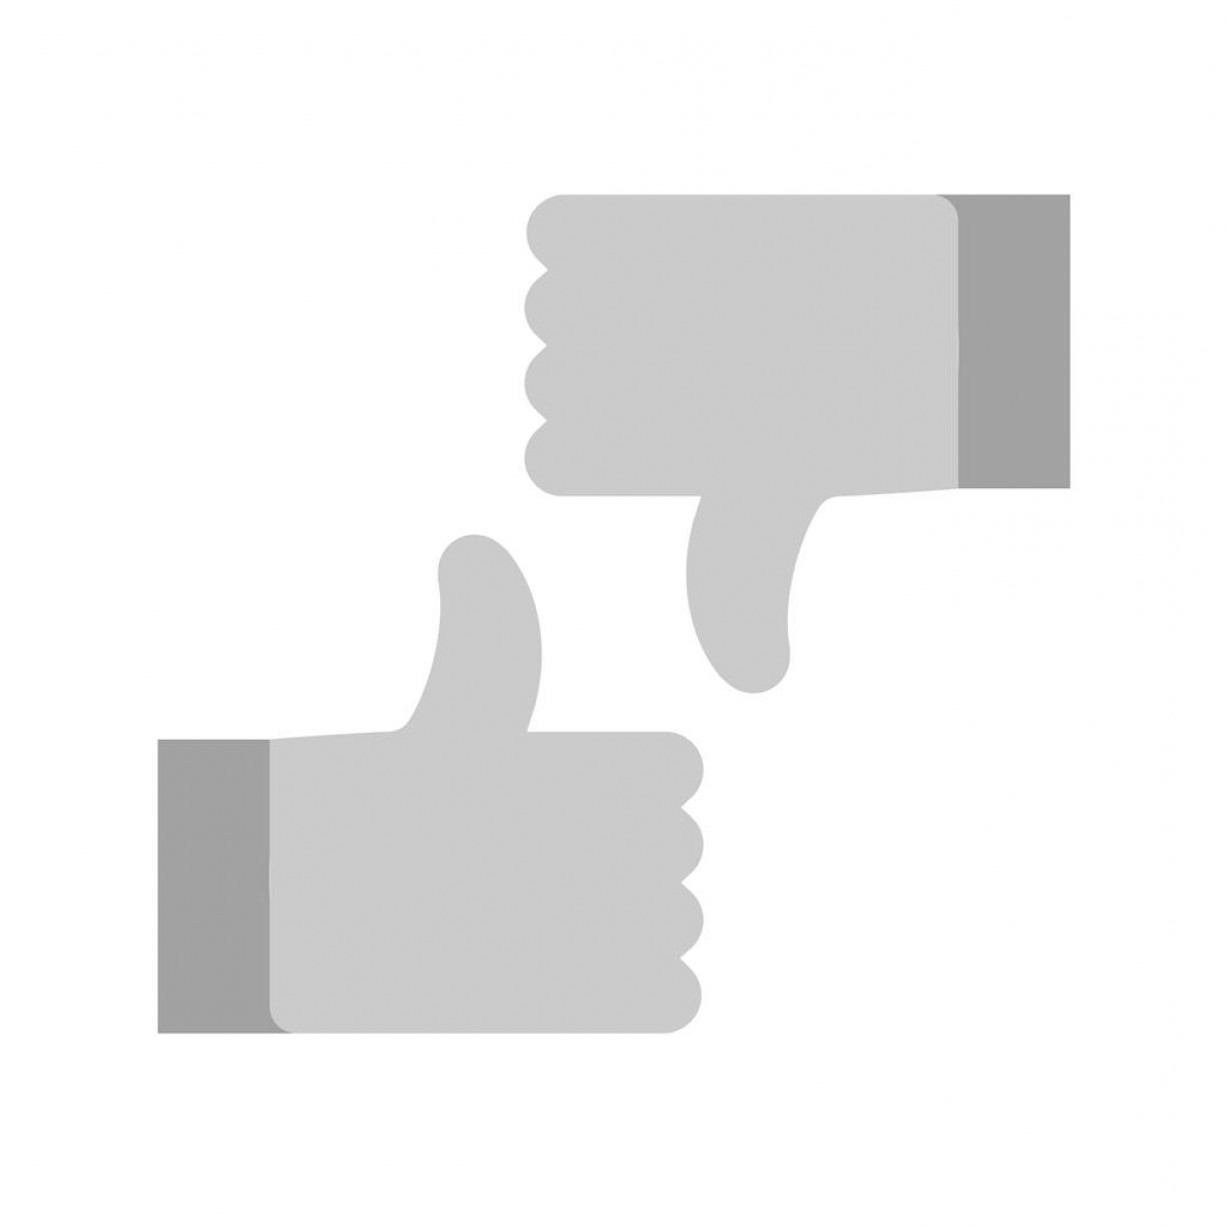 Vector Thumbs Up Down: Material Design Thumbs Up Down Greyscale Icon